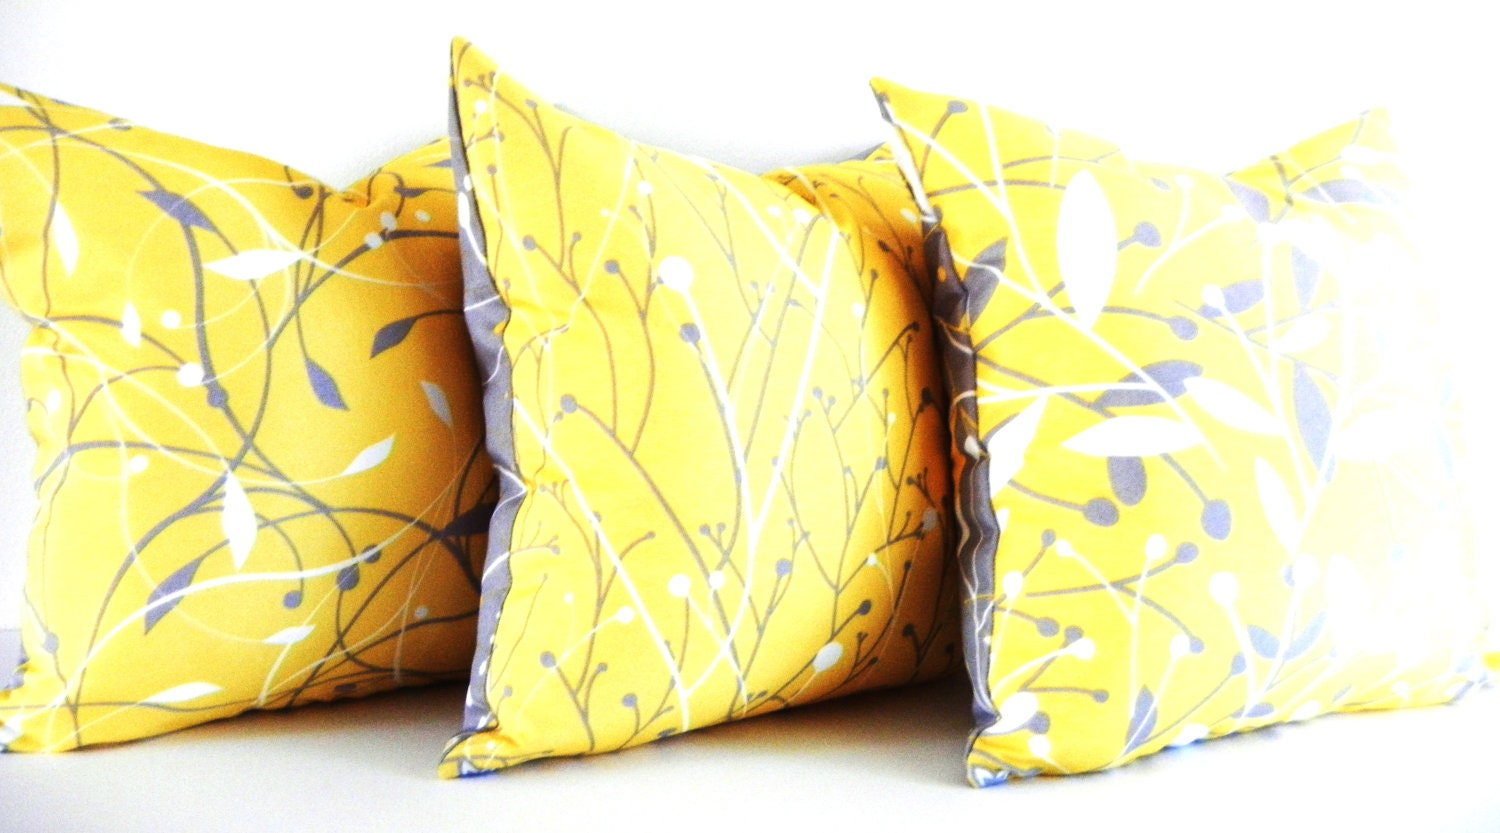 Yellow Pillows Gray Pillows Decorative Pillows Set of 3 : ilfullxfull4049081024sqi from www.etsy.com size 1500 x 833 jpeg 209kB